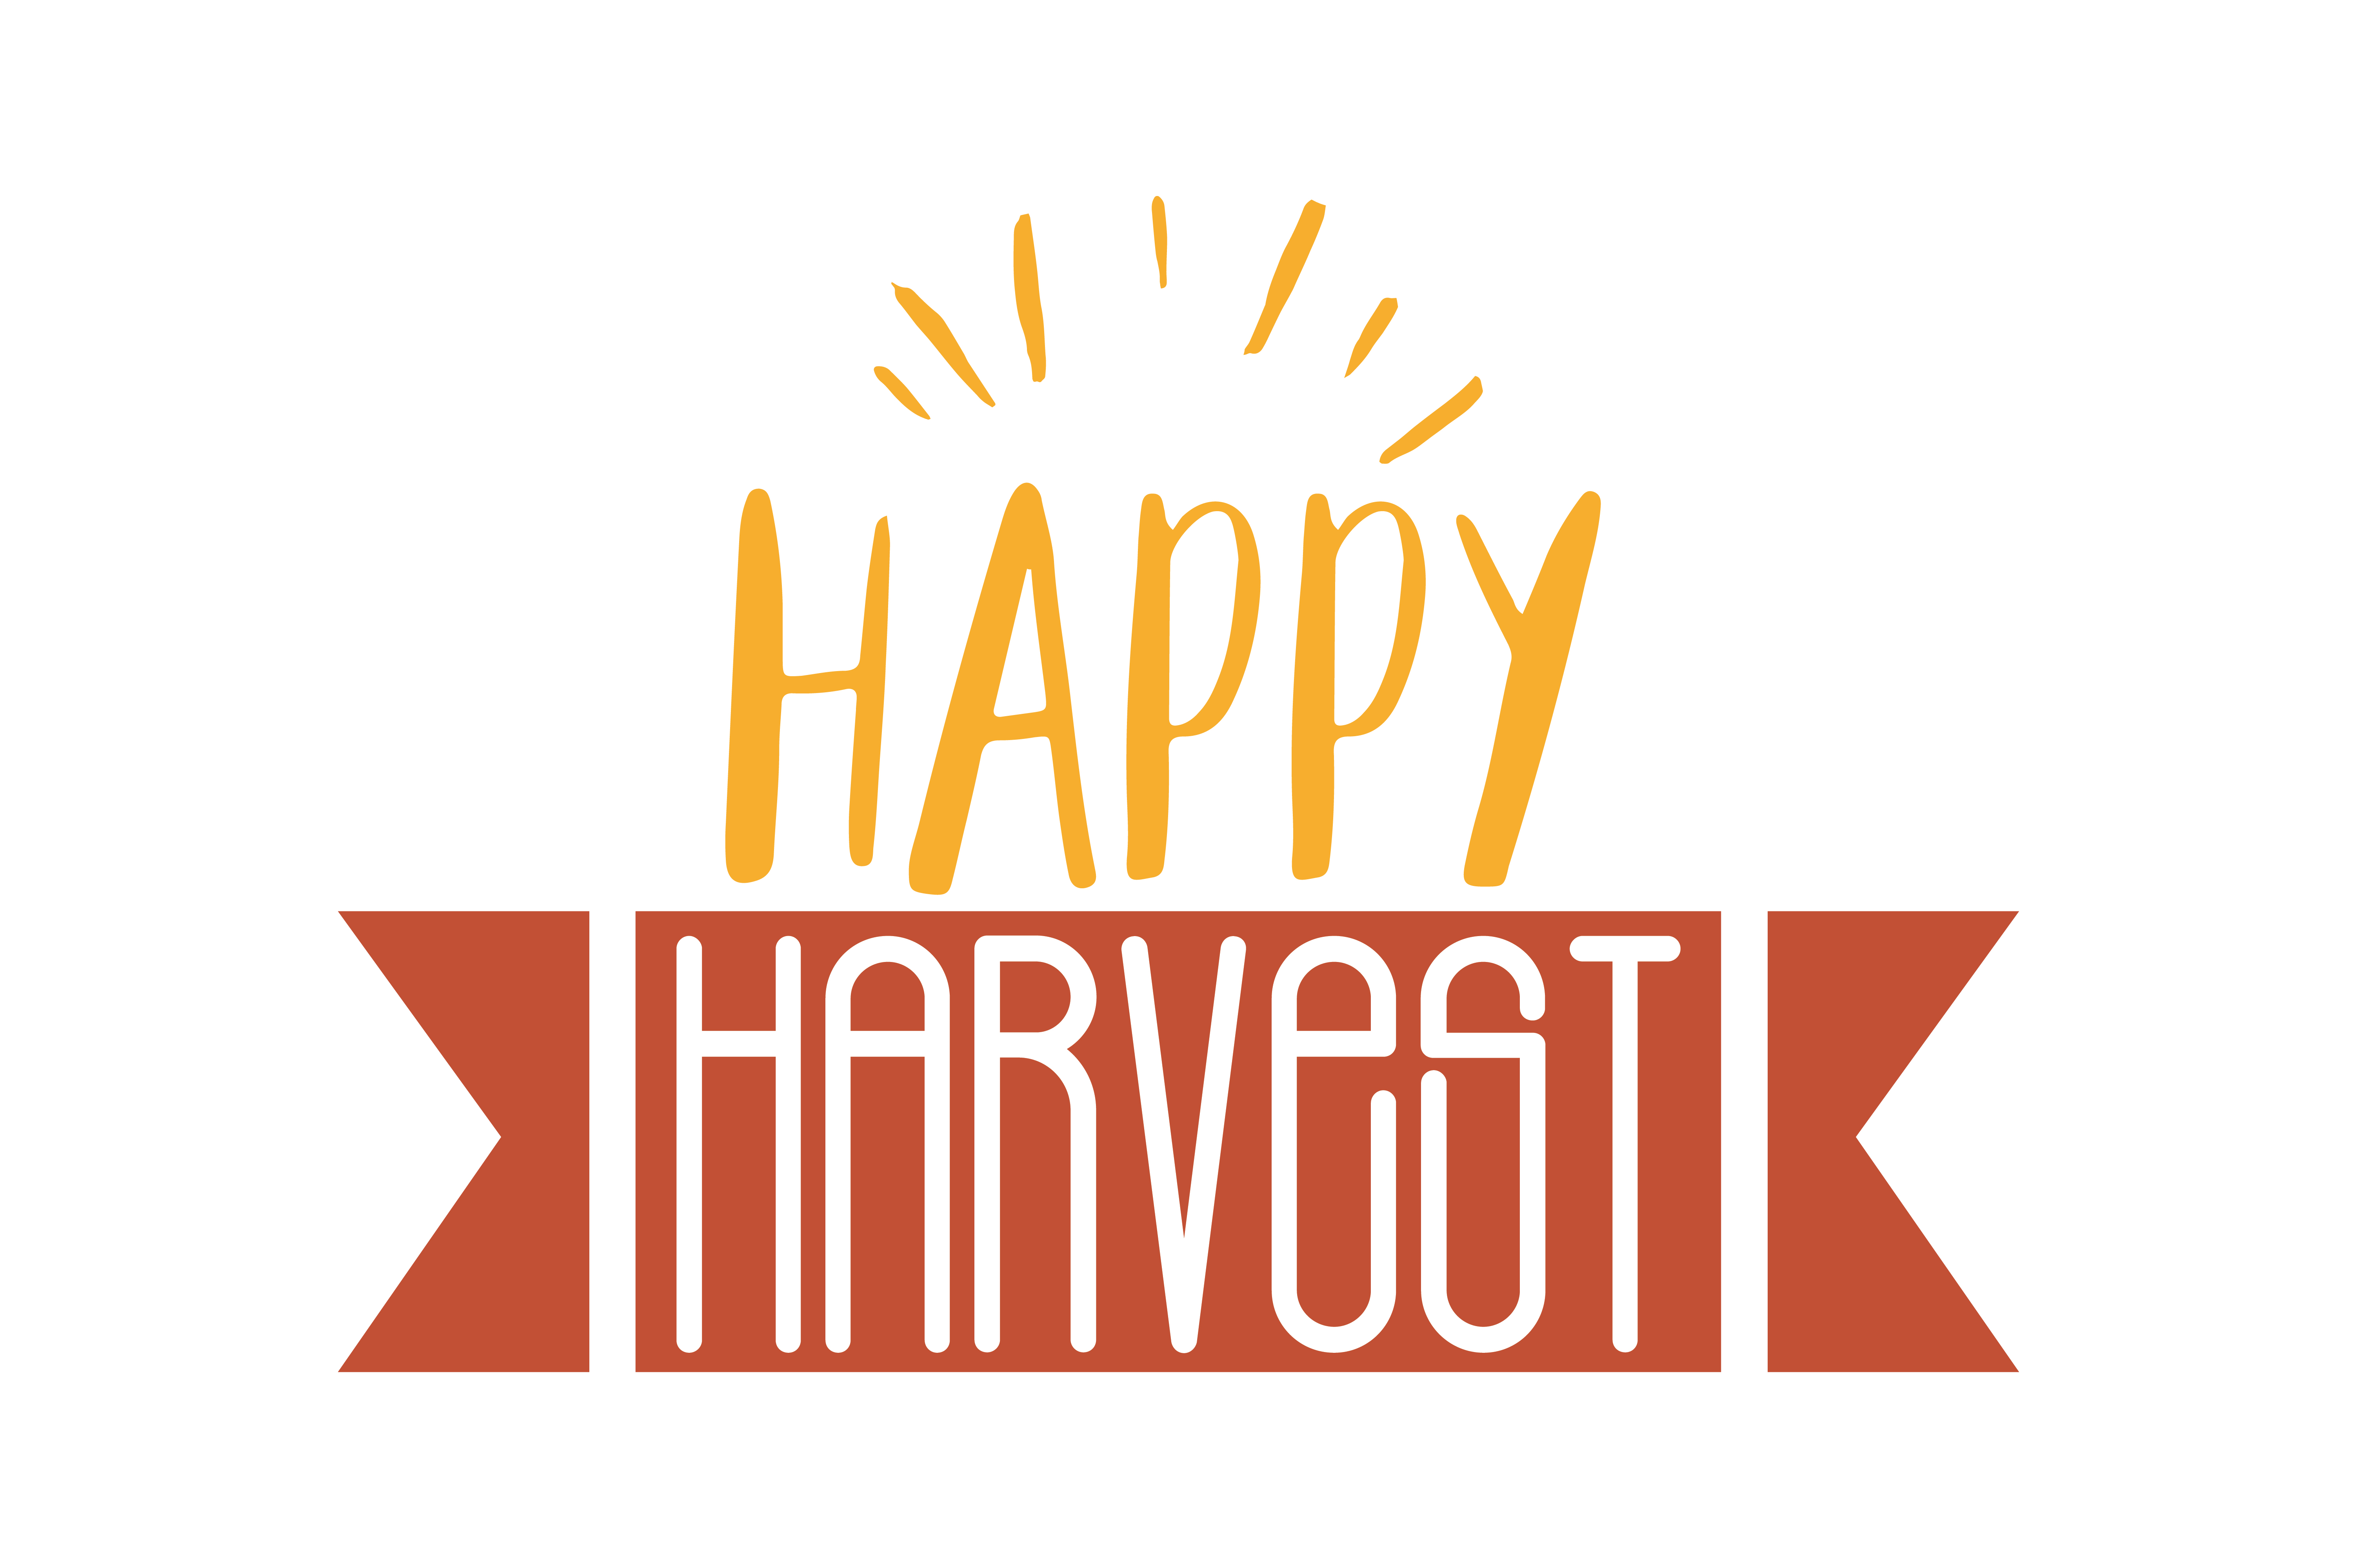 Download Free Happy Harvest Quote Svg Cut Graphic By Thelucky Creative Fabrica for Cricut Explore, Silhouette and other cutting machines.